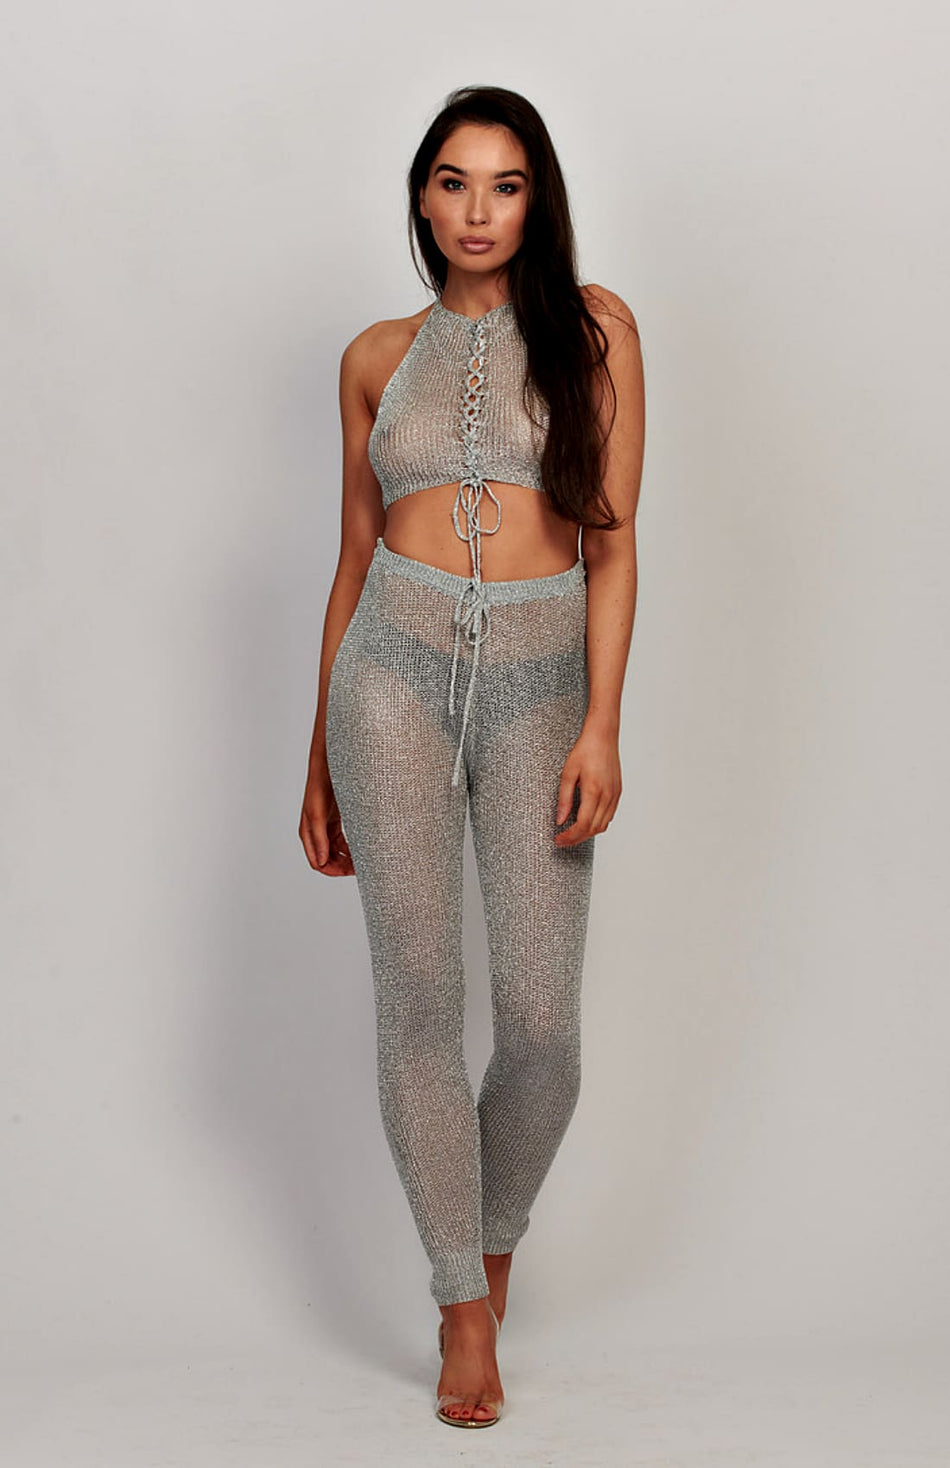 Silver Metallic Sheer Halter Neck Crop Top And Pants Set